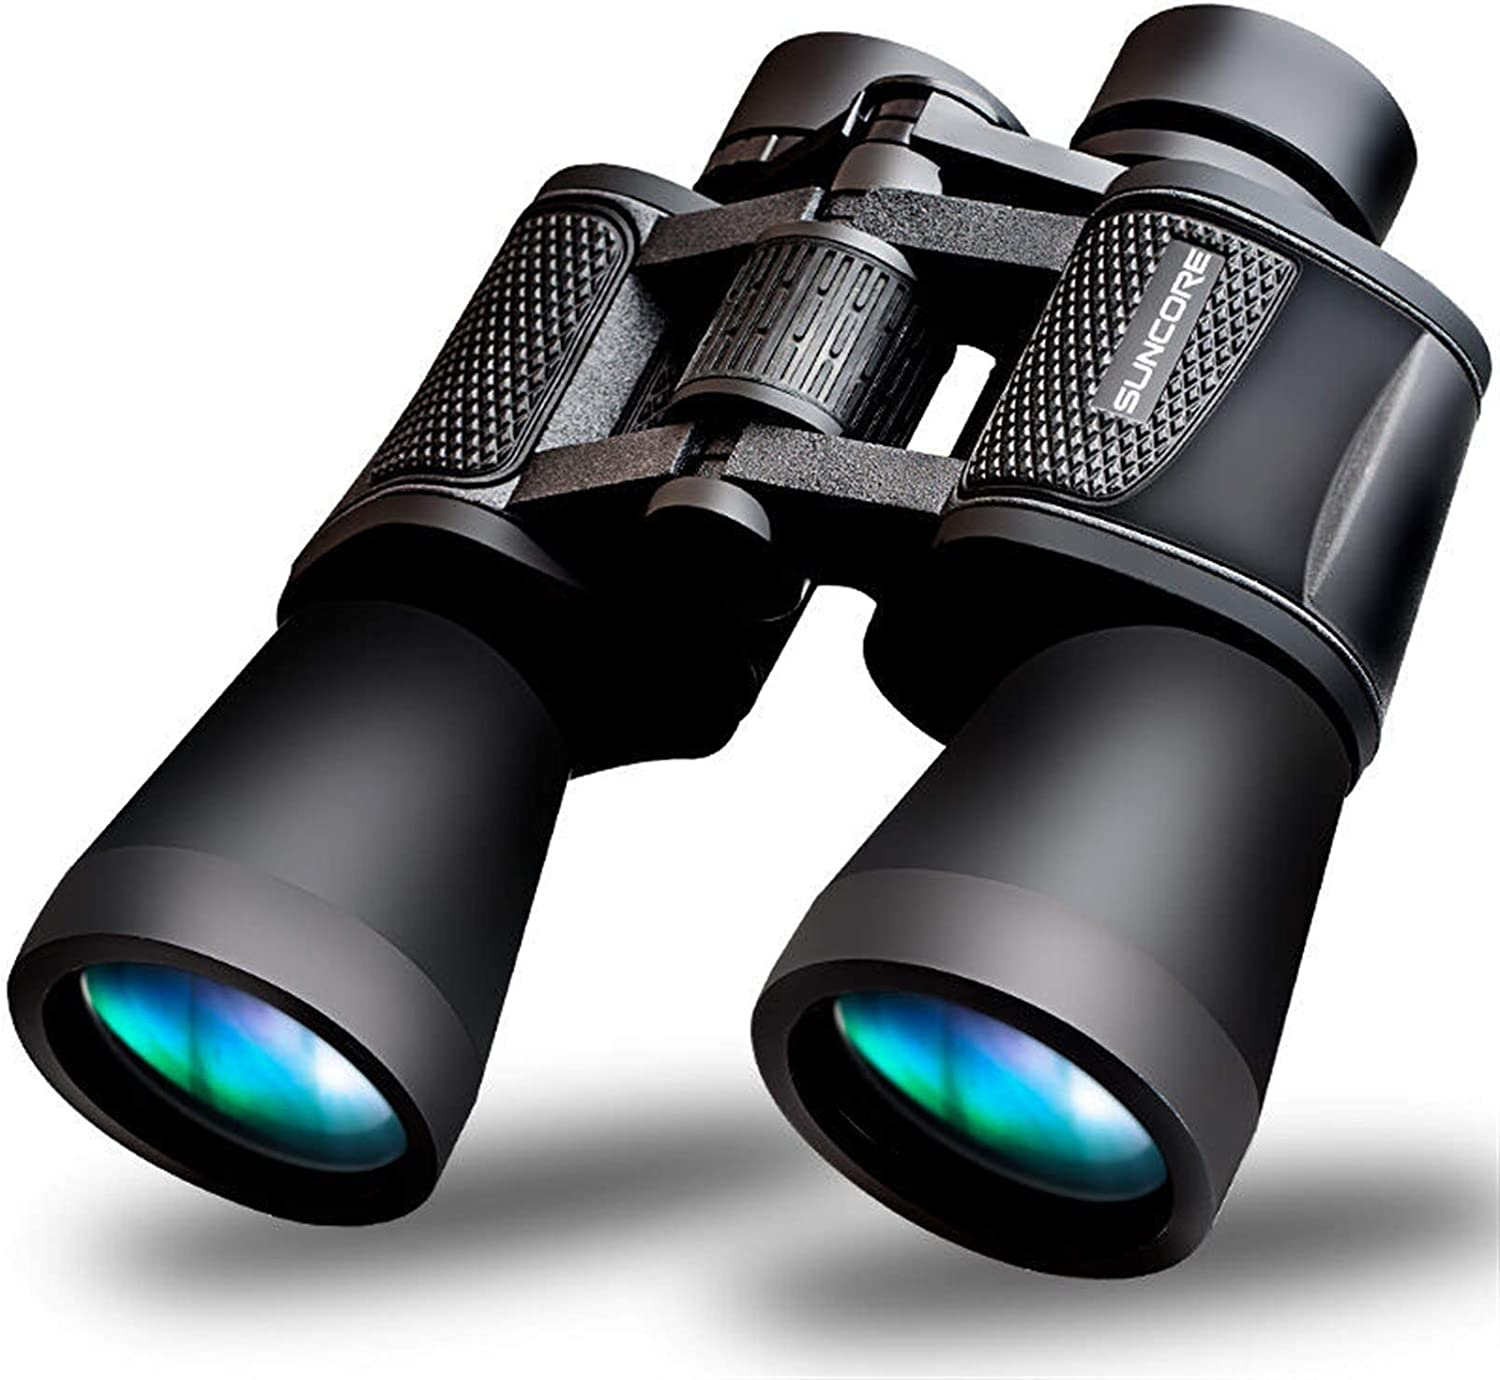 Japan's largest assortment FPP HD Waterproof Hunting Binocular 16x50 Limited time sale High Definition Profes